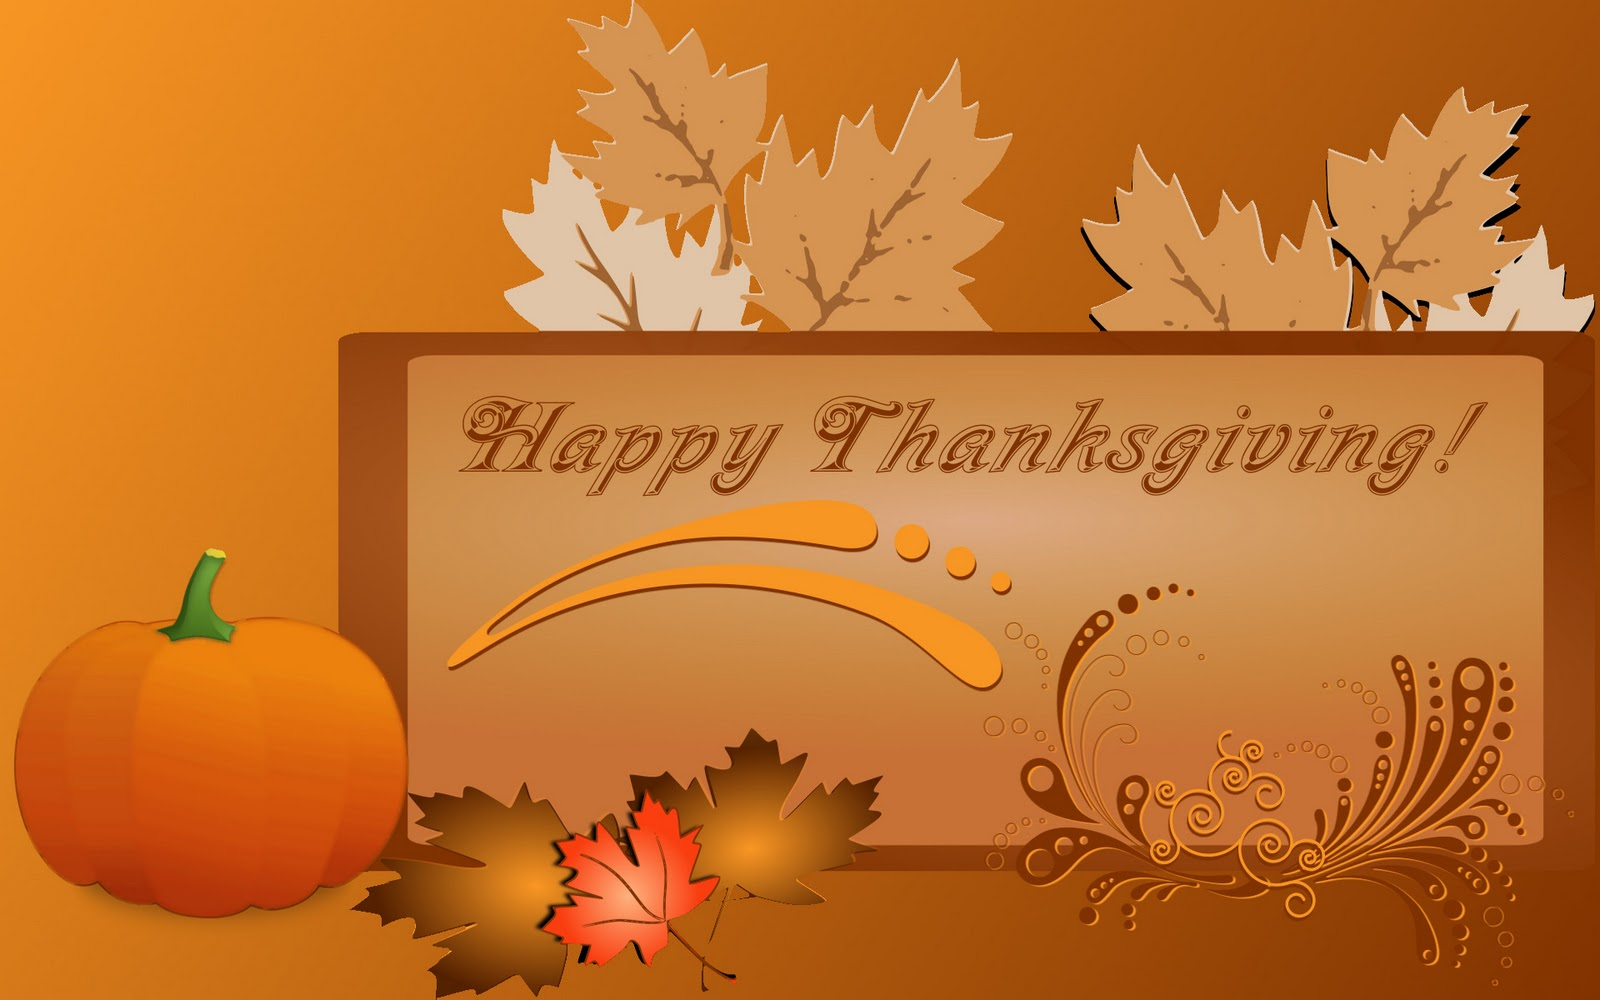 nothing happy thanksgiving images hd ppt #1698